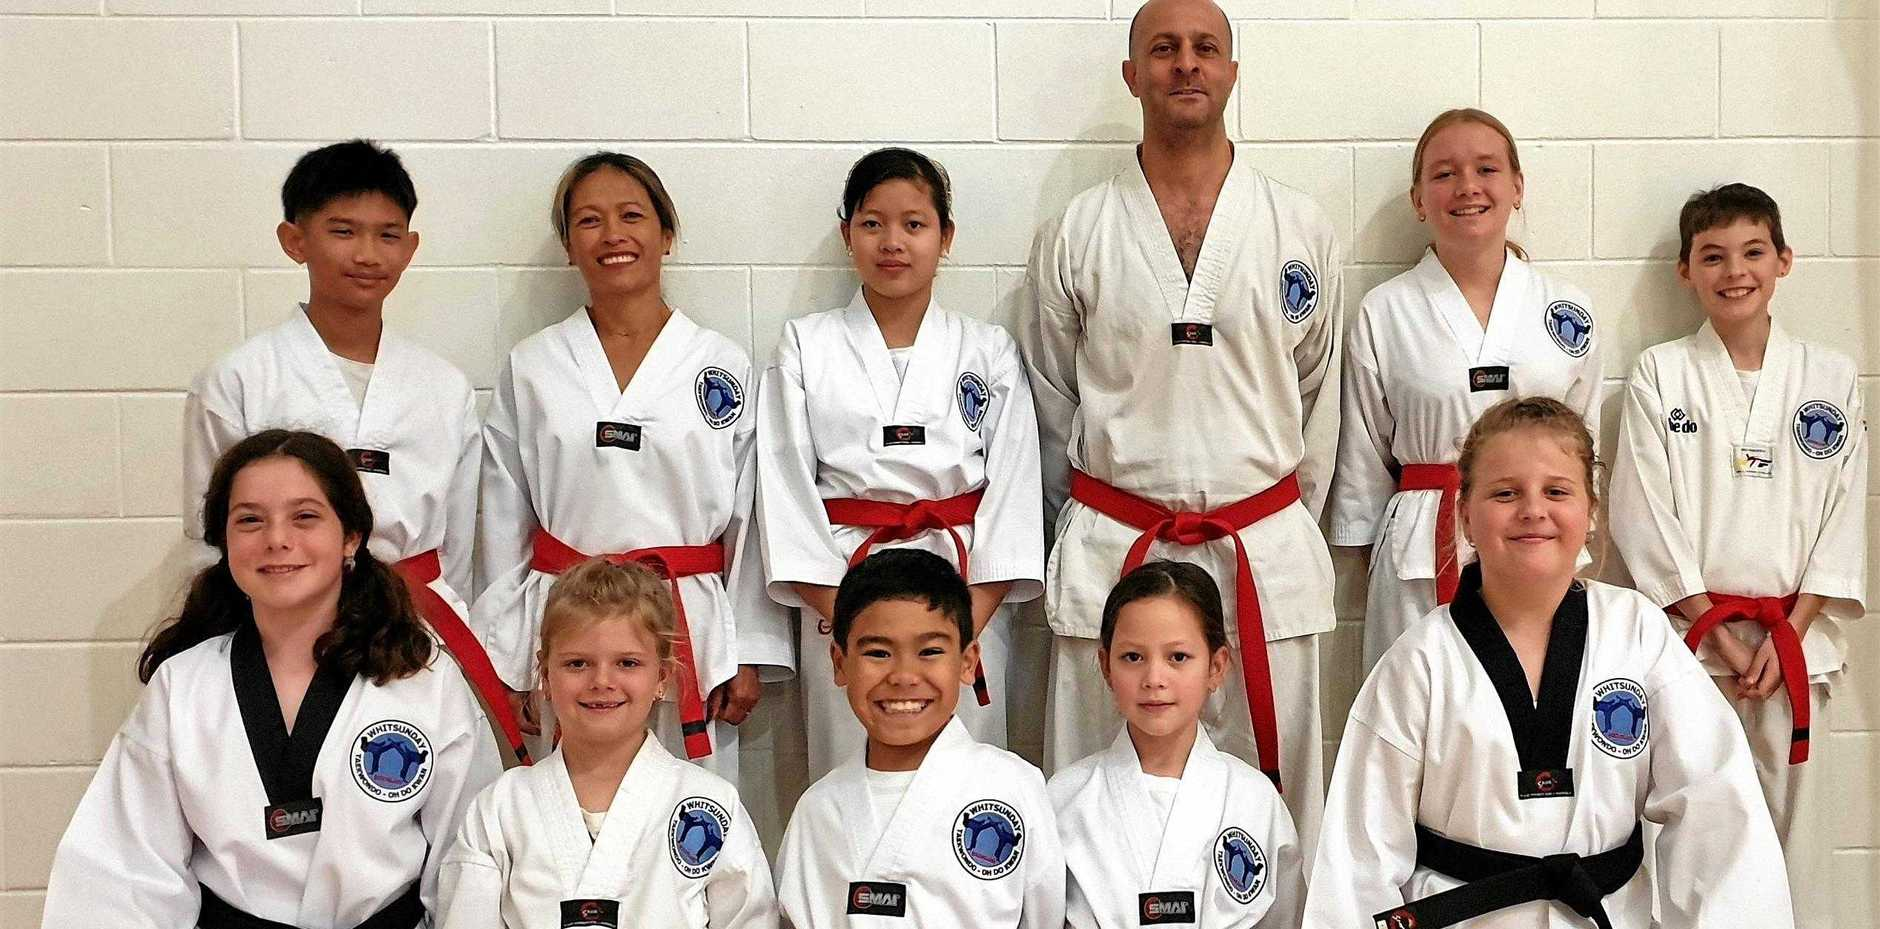 Whitsunday Taekwondo students (back) Jack Hosking, Marivic Gaskin, Feywer White, Sebastian Foti, Joan-Maree Spicer, Tavis McDonald, (front) Chiara Foti, Imogen Howard, Jai Patrick, Alisara White and Chelsea Howard at their recent grading.